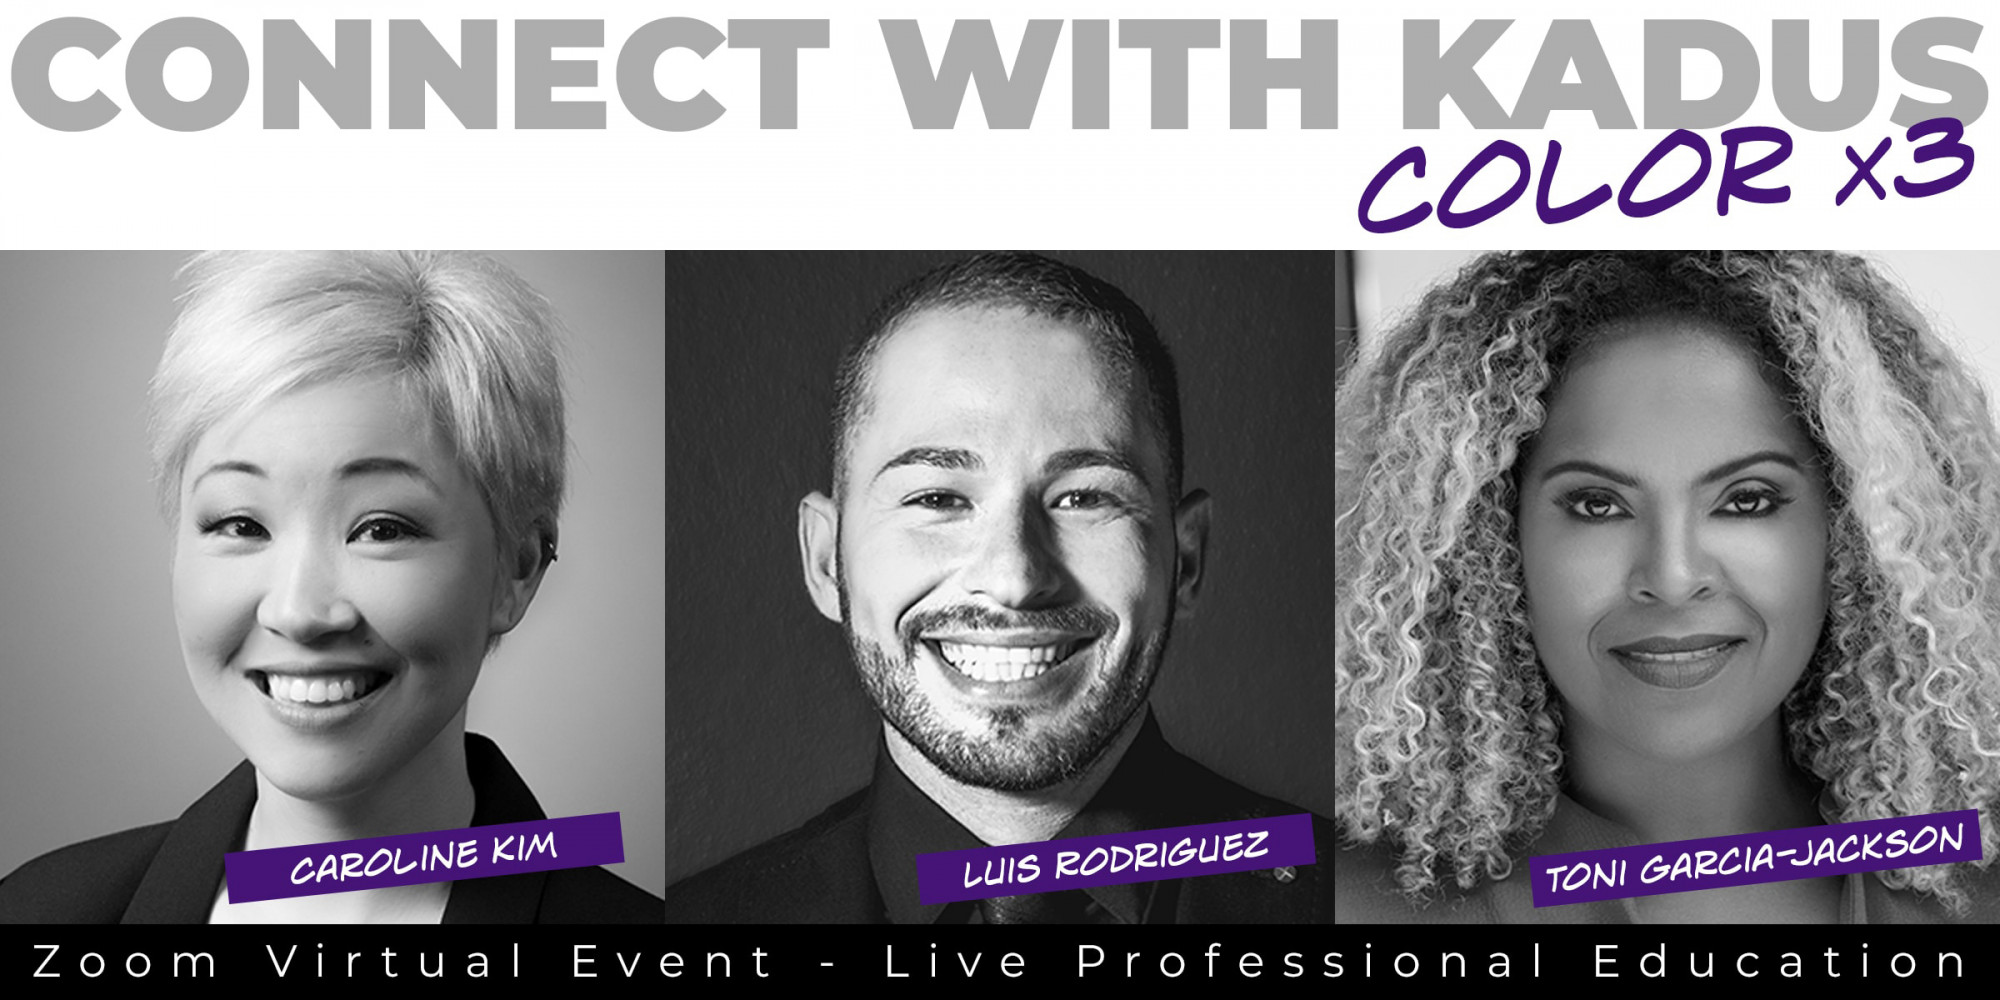 Connect with Kadus